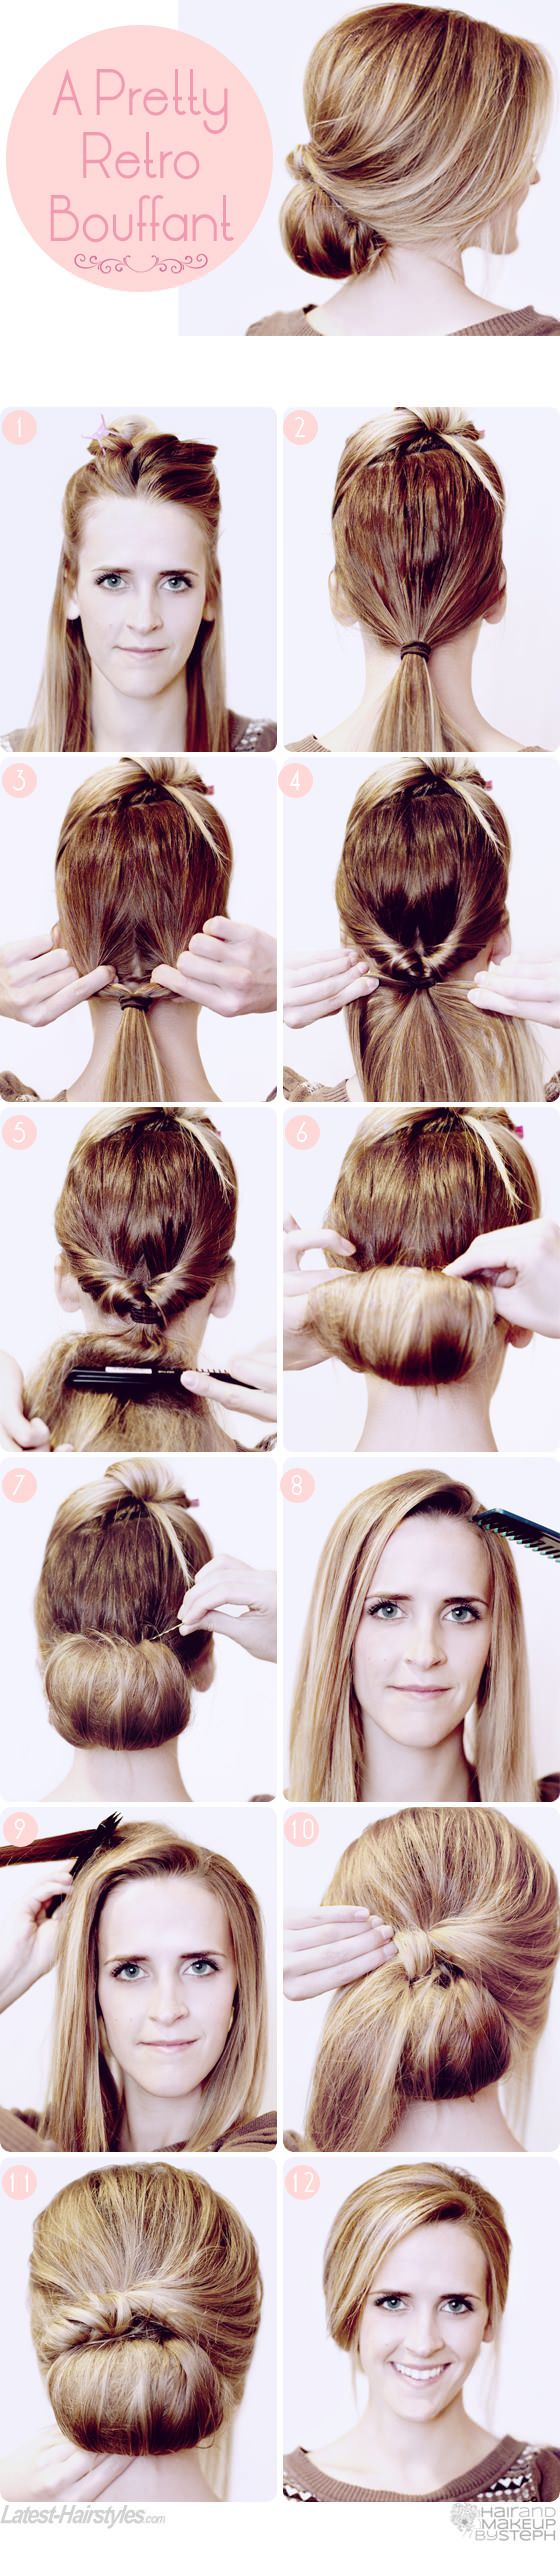 Exceptionally Elegant: 4 Ways to Do a Classy Bouffant | Latest-Hairstyles.com